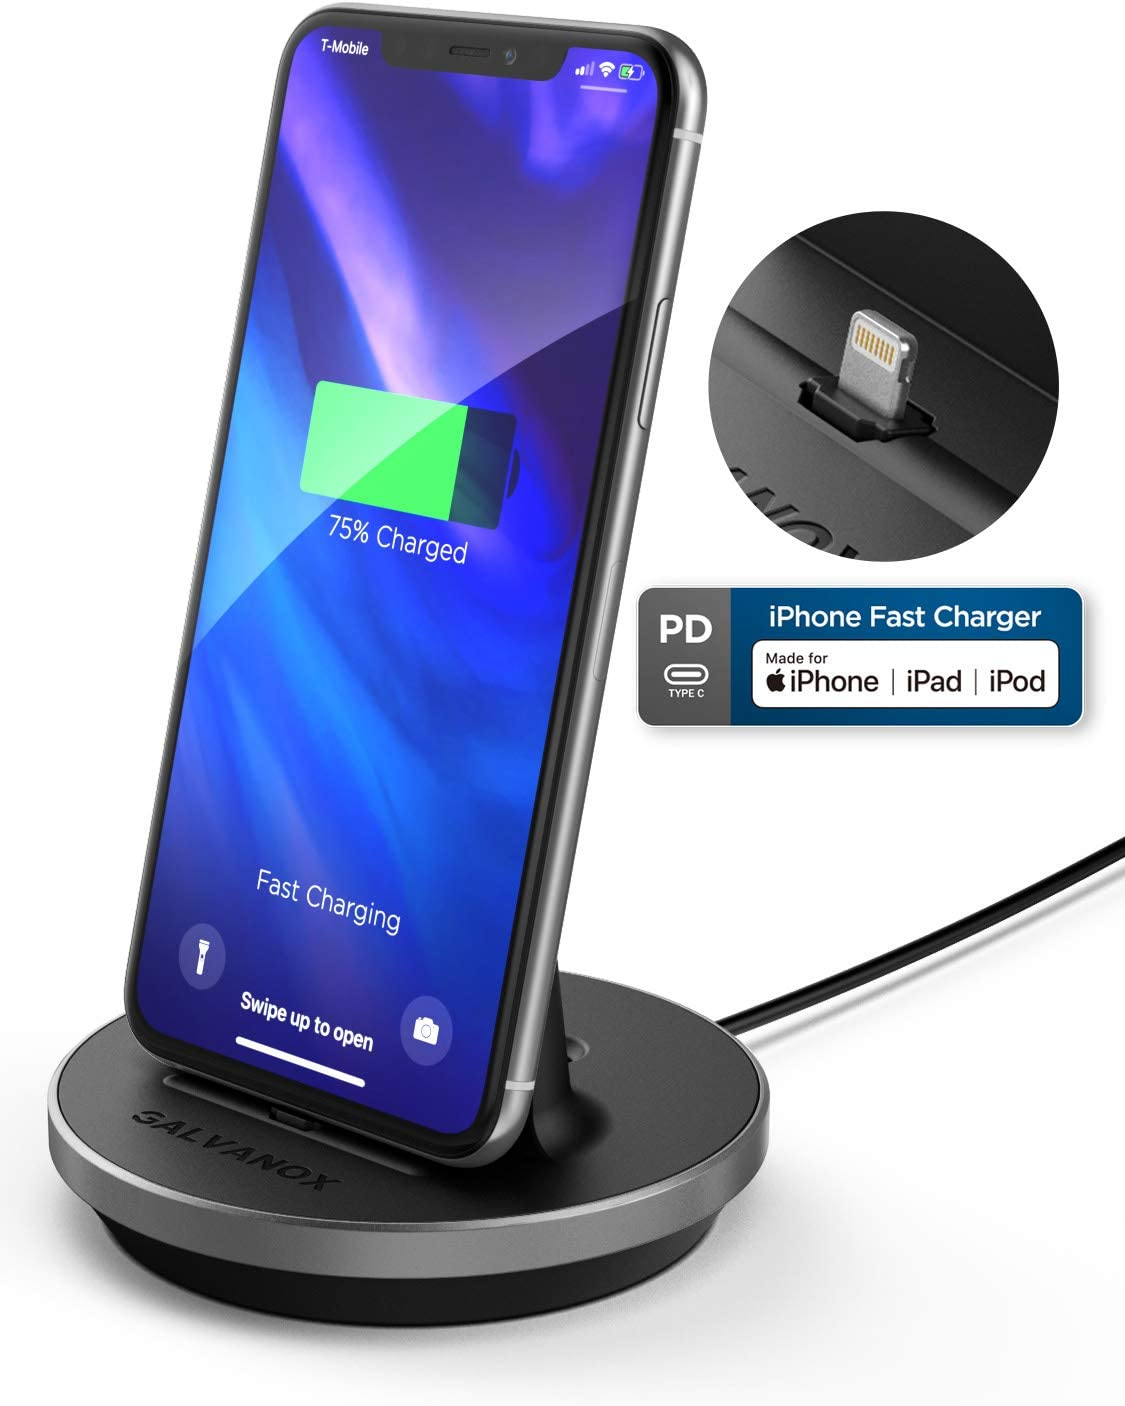 Encased iPhone Charger Stand (MFi Certified) Fast Charging Lightning Desktop Holder Dock with Built-in USB C Cable for Apple iPhone 8/8 Plus/X/Xs Max/XR/11/Pro Max